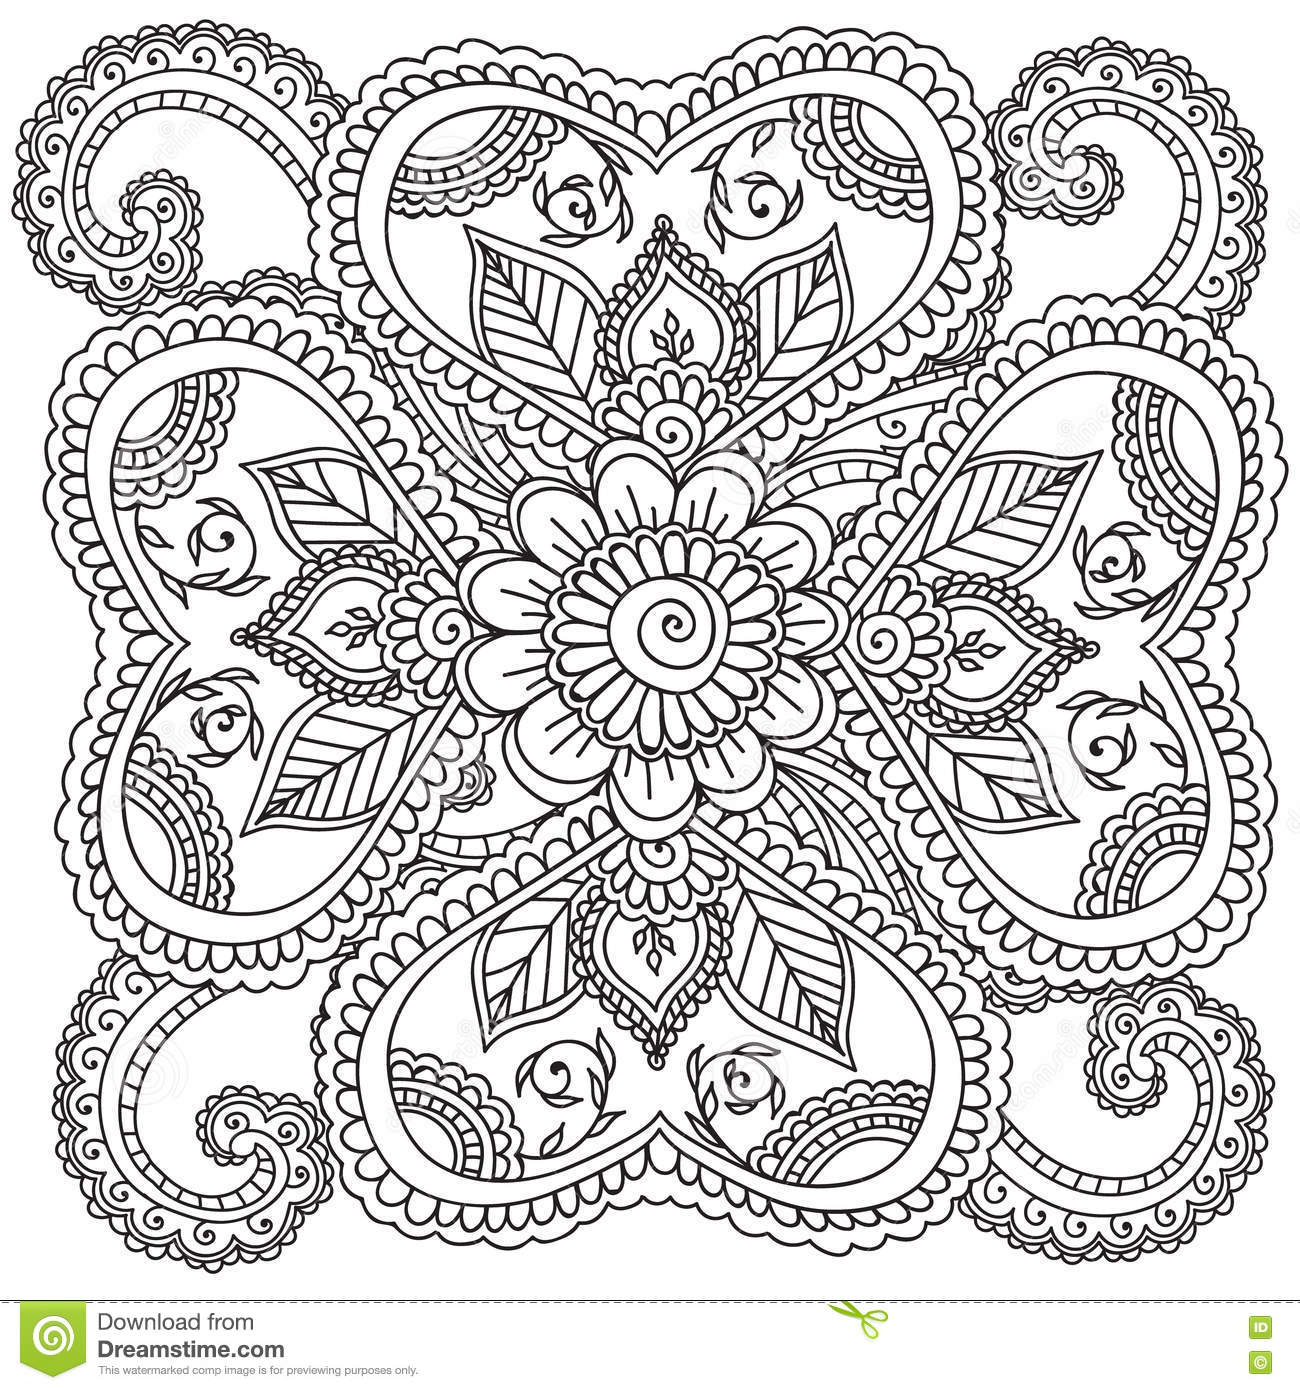 Zen coloring books for adults app - Royalty Free Vector Download Coloring Pages For Adults